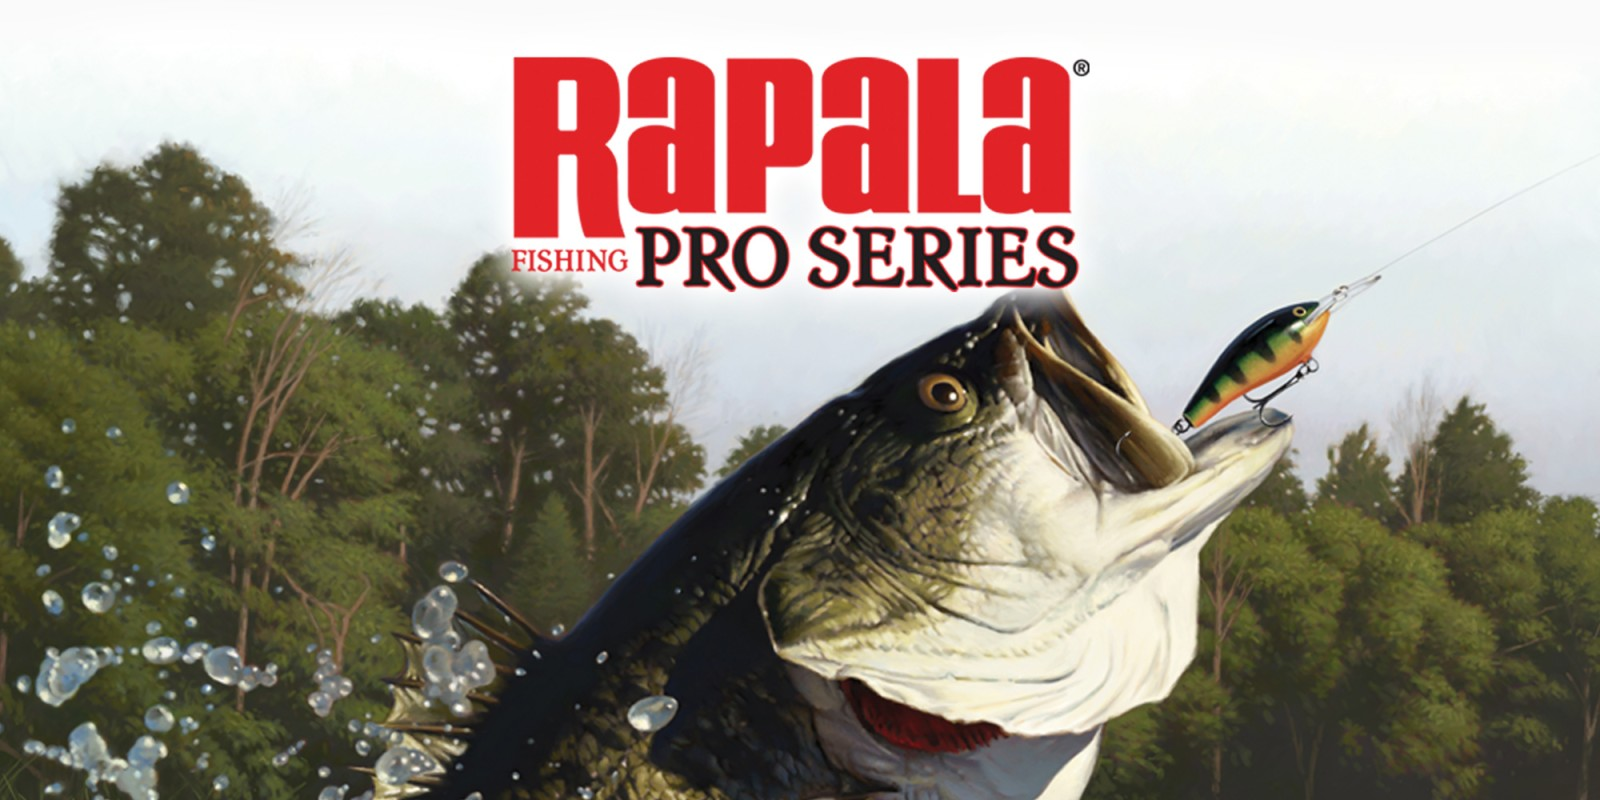 Rapala Fishing Pro Series | Nintendo Switch | Games | Nintendo